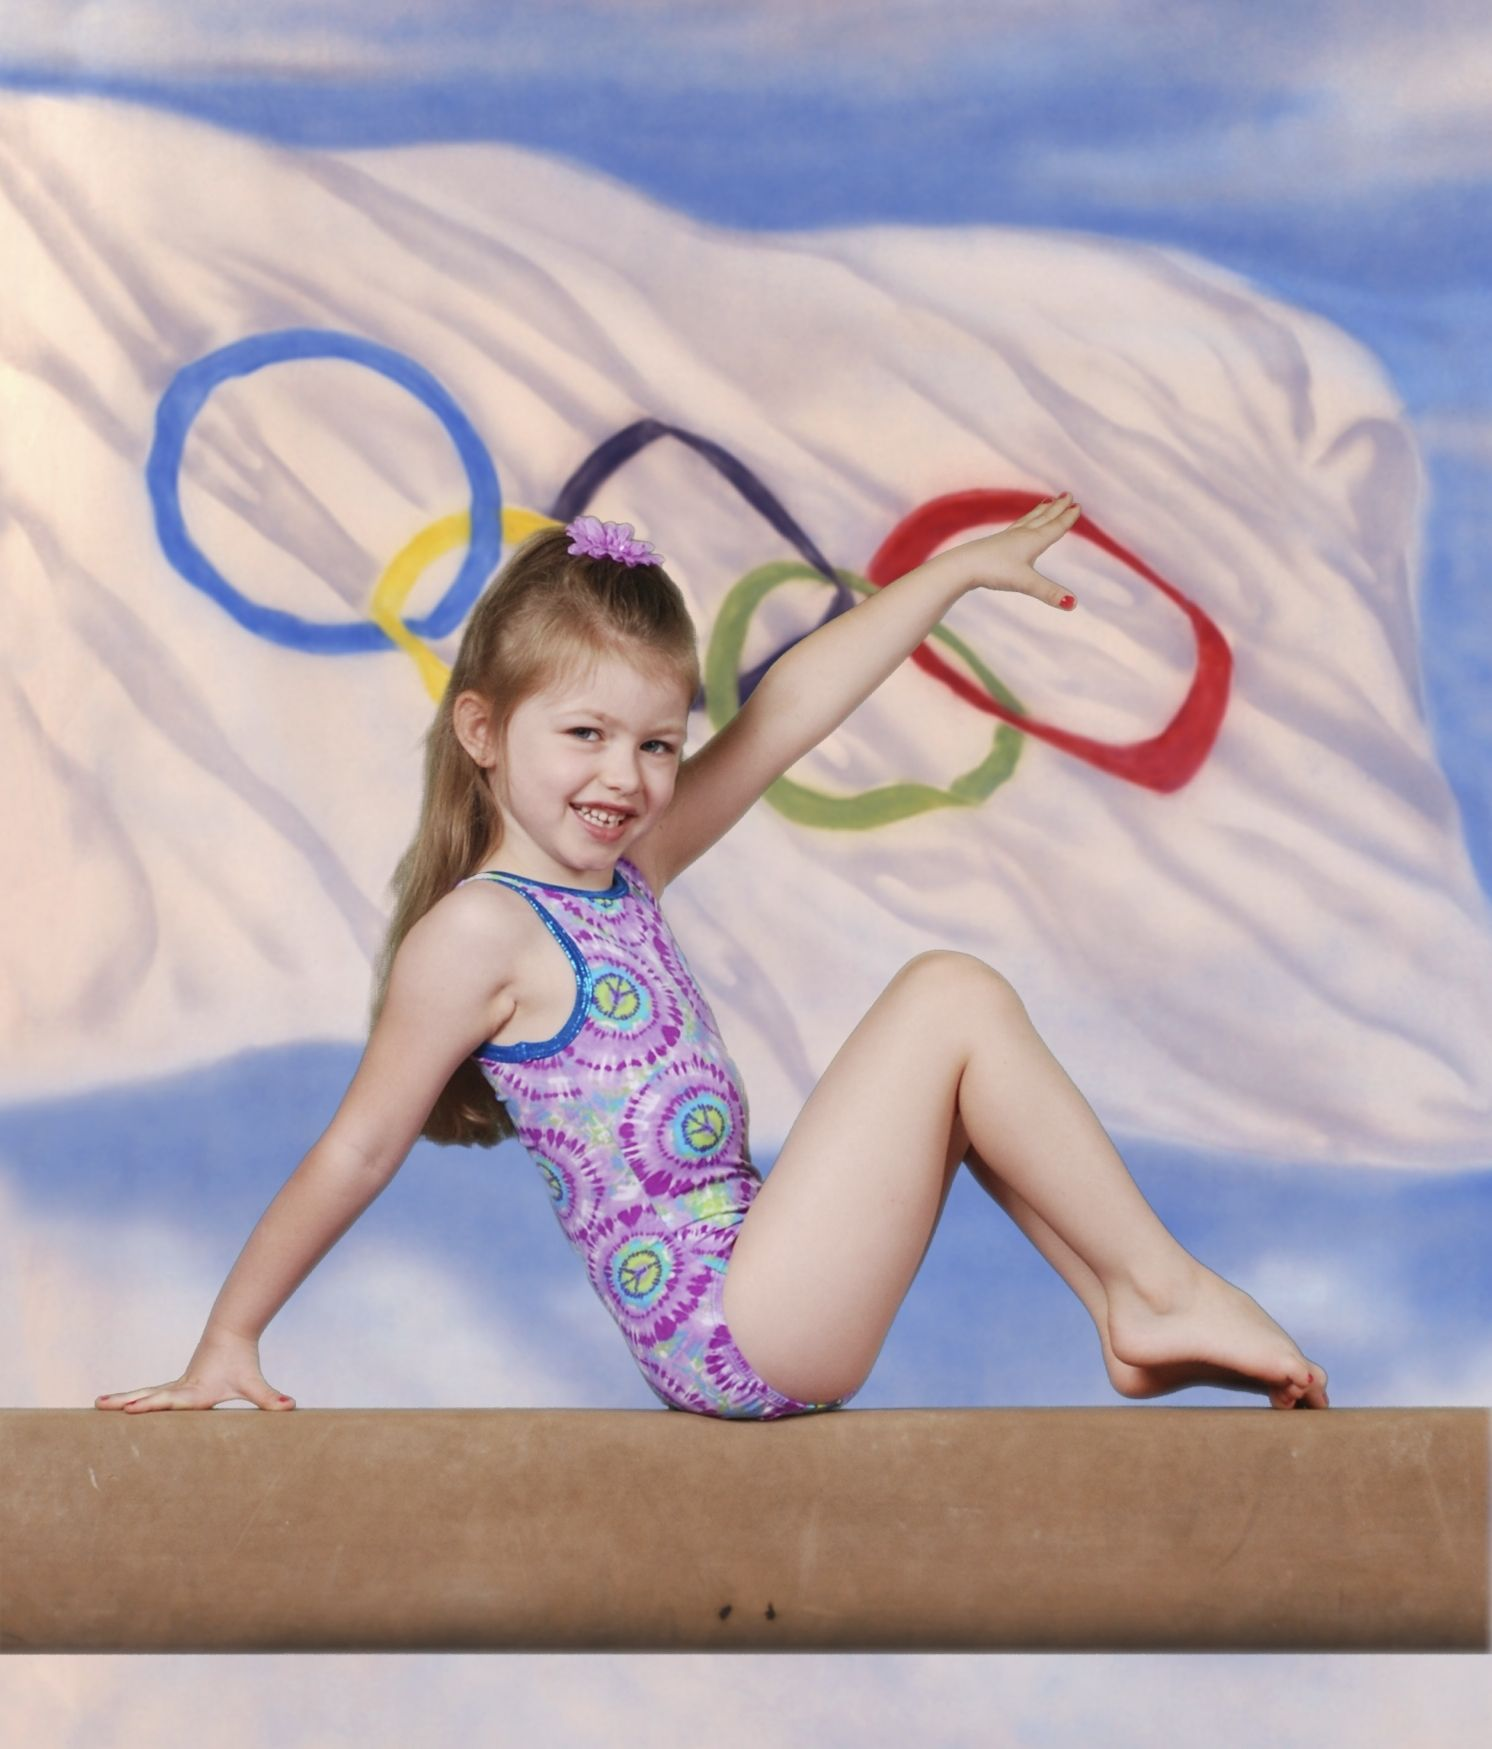 gymnastic kids Image result for best gymnastic photos